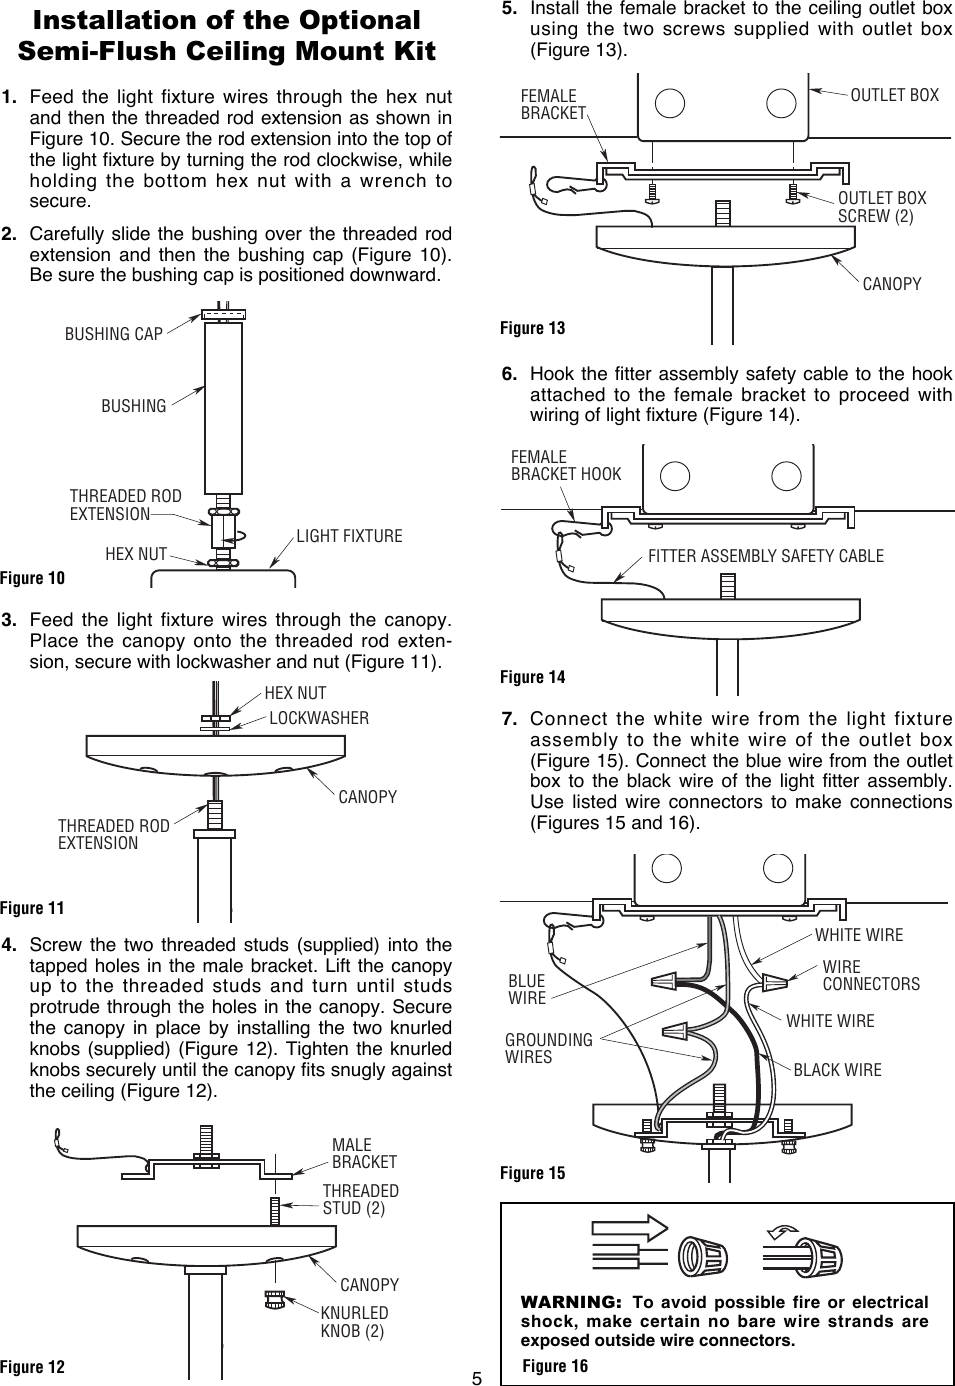 Emerson Lk70 Owners Manual Bp7418 And Lk80 Wiring A Light Fixture Blue Wire Page 5 Of 8